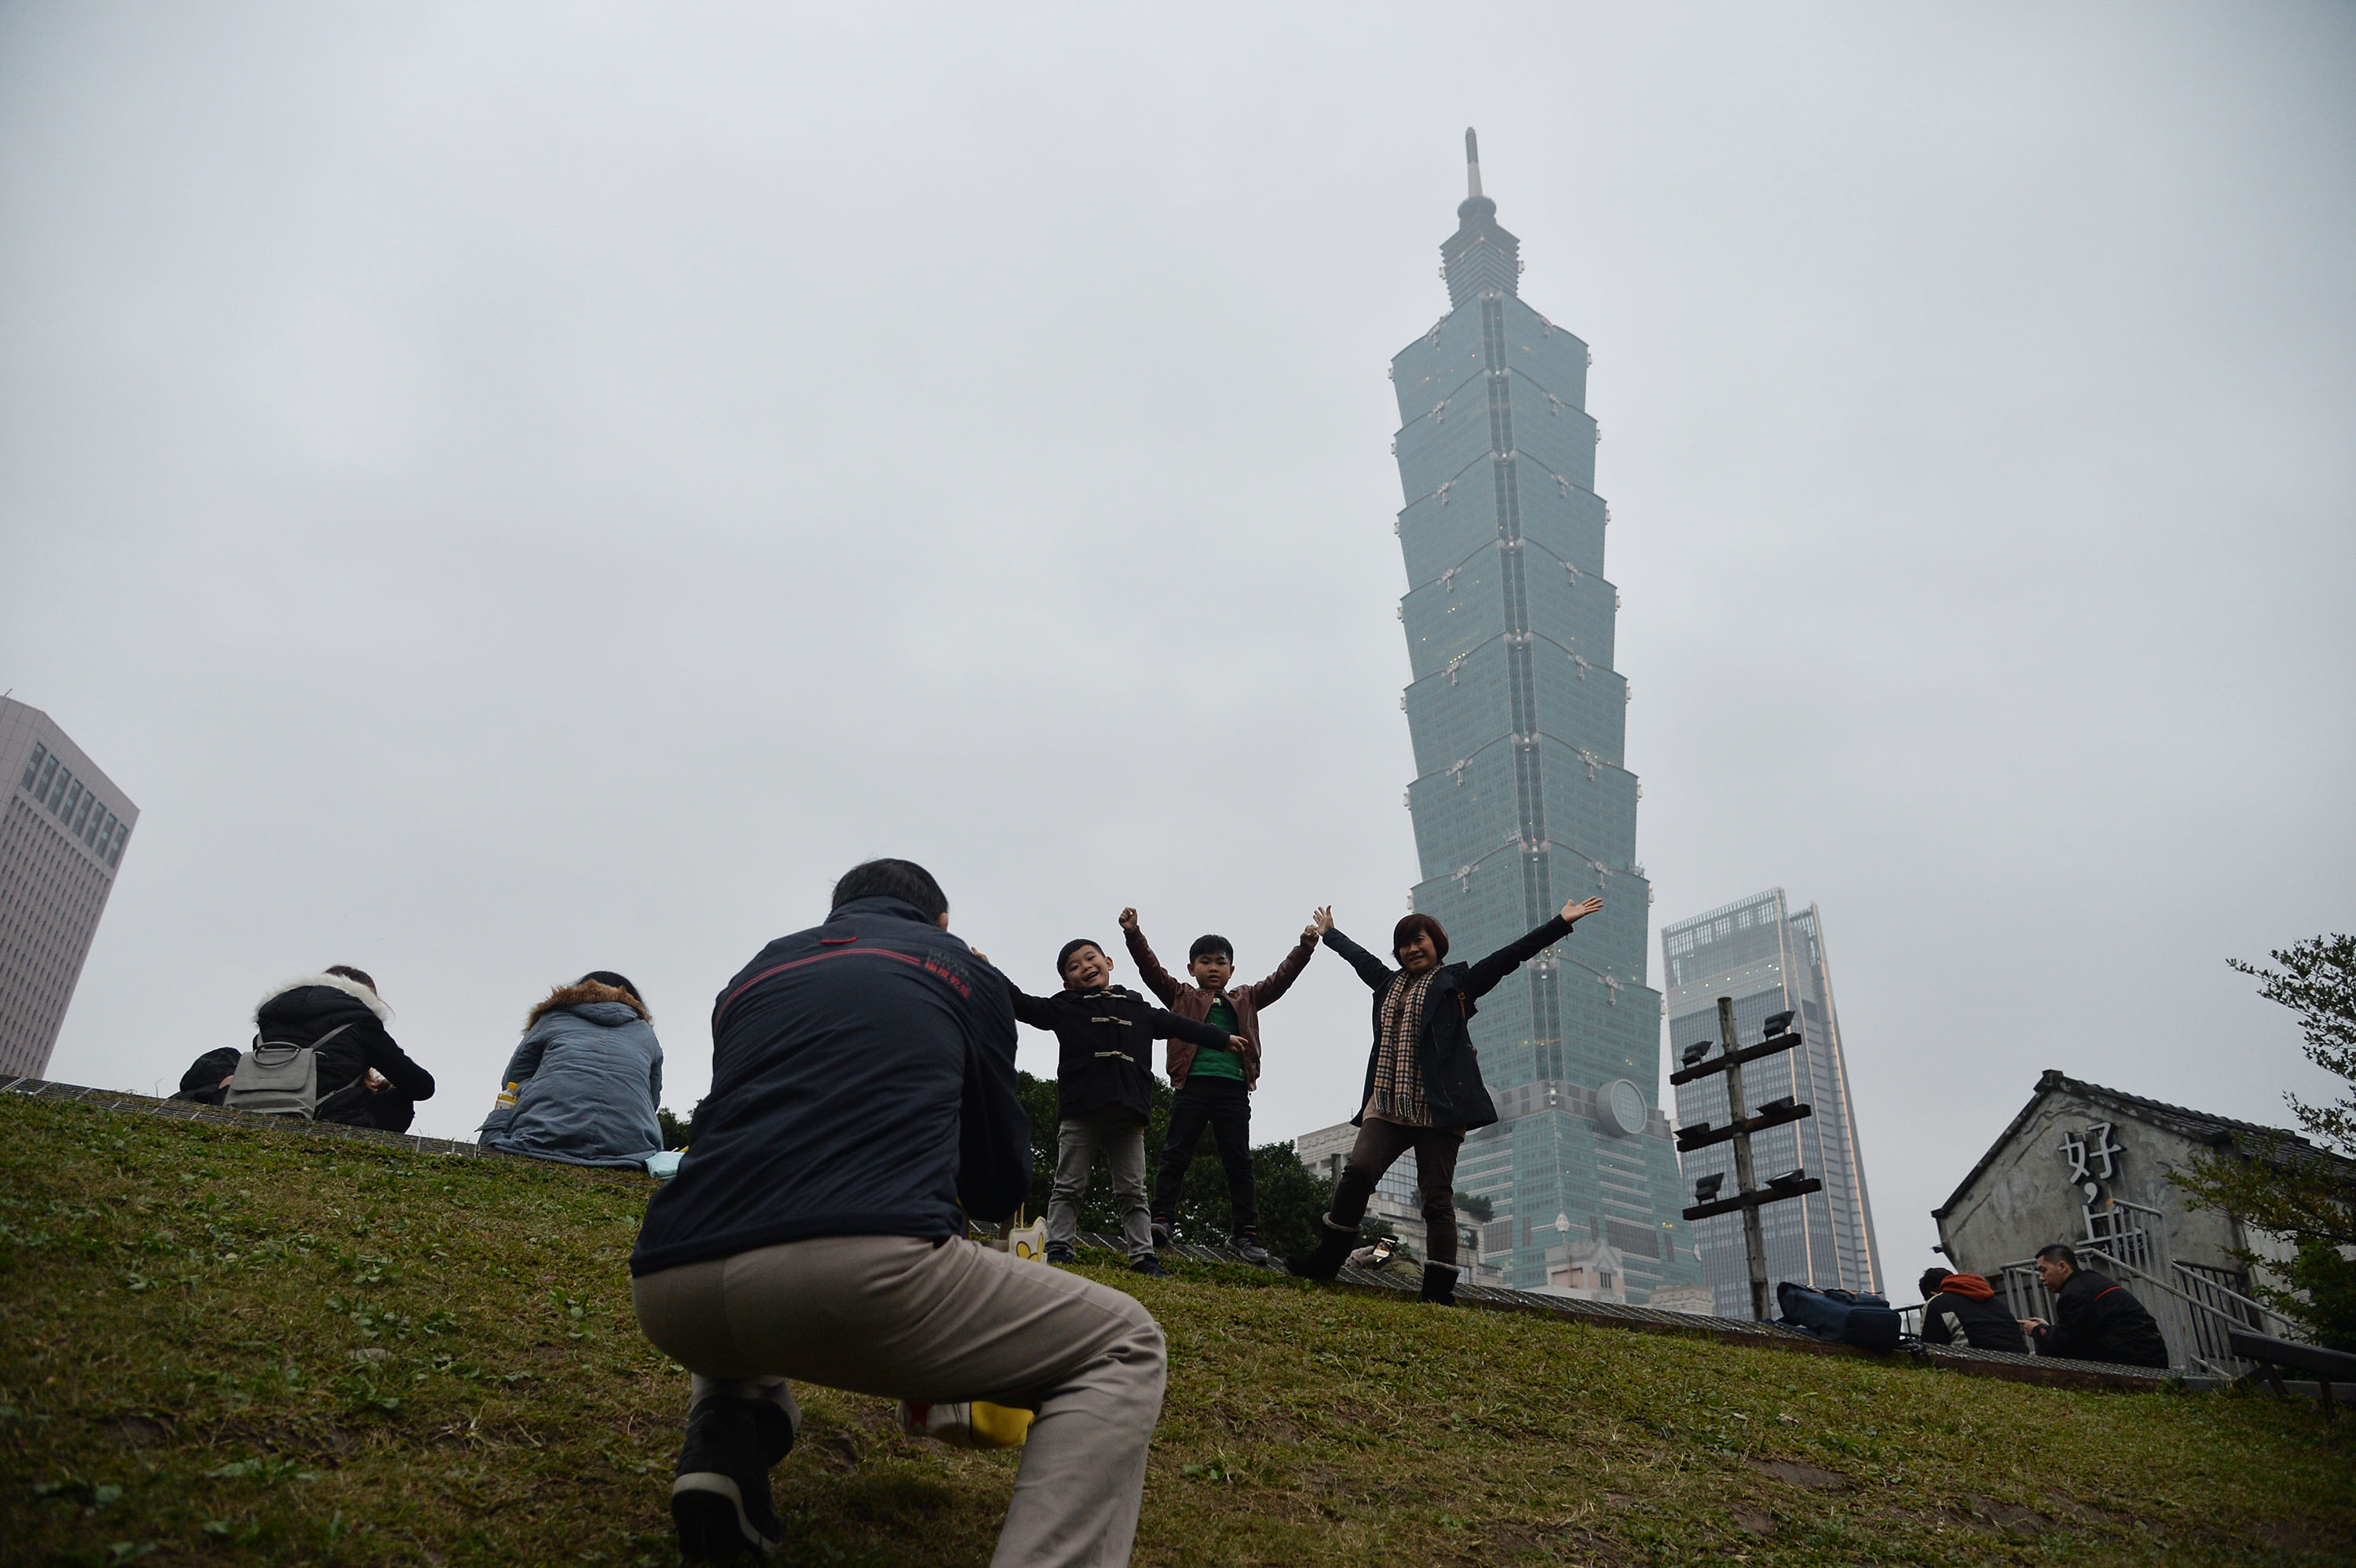 Crowds gathered in Taipei's eastern district early to view the New Year's Eve fireworks.